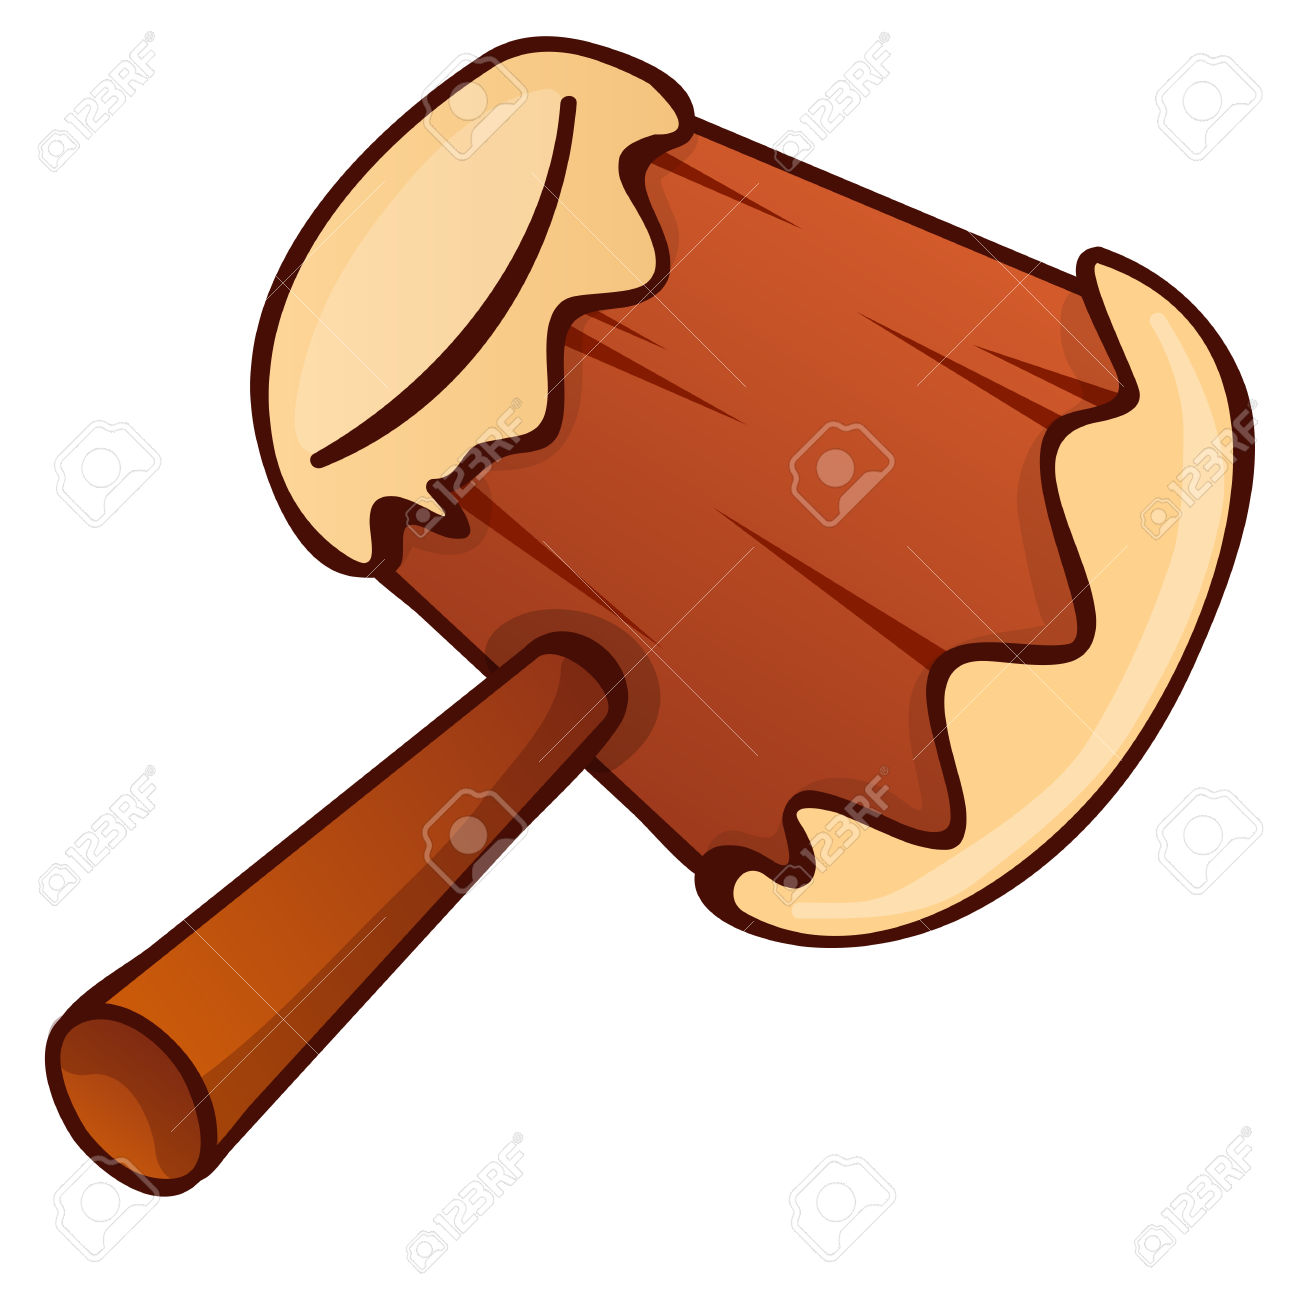 Wooden hammer clipart no background.